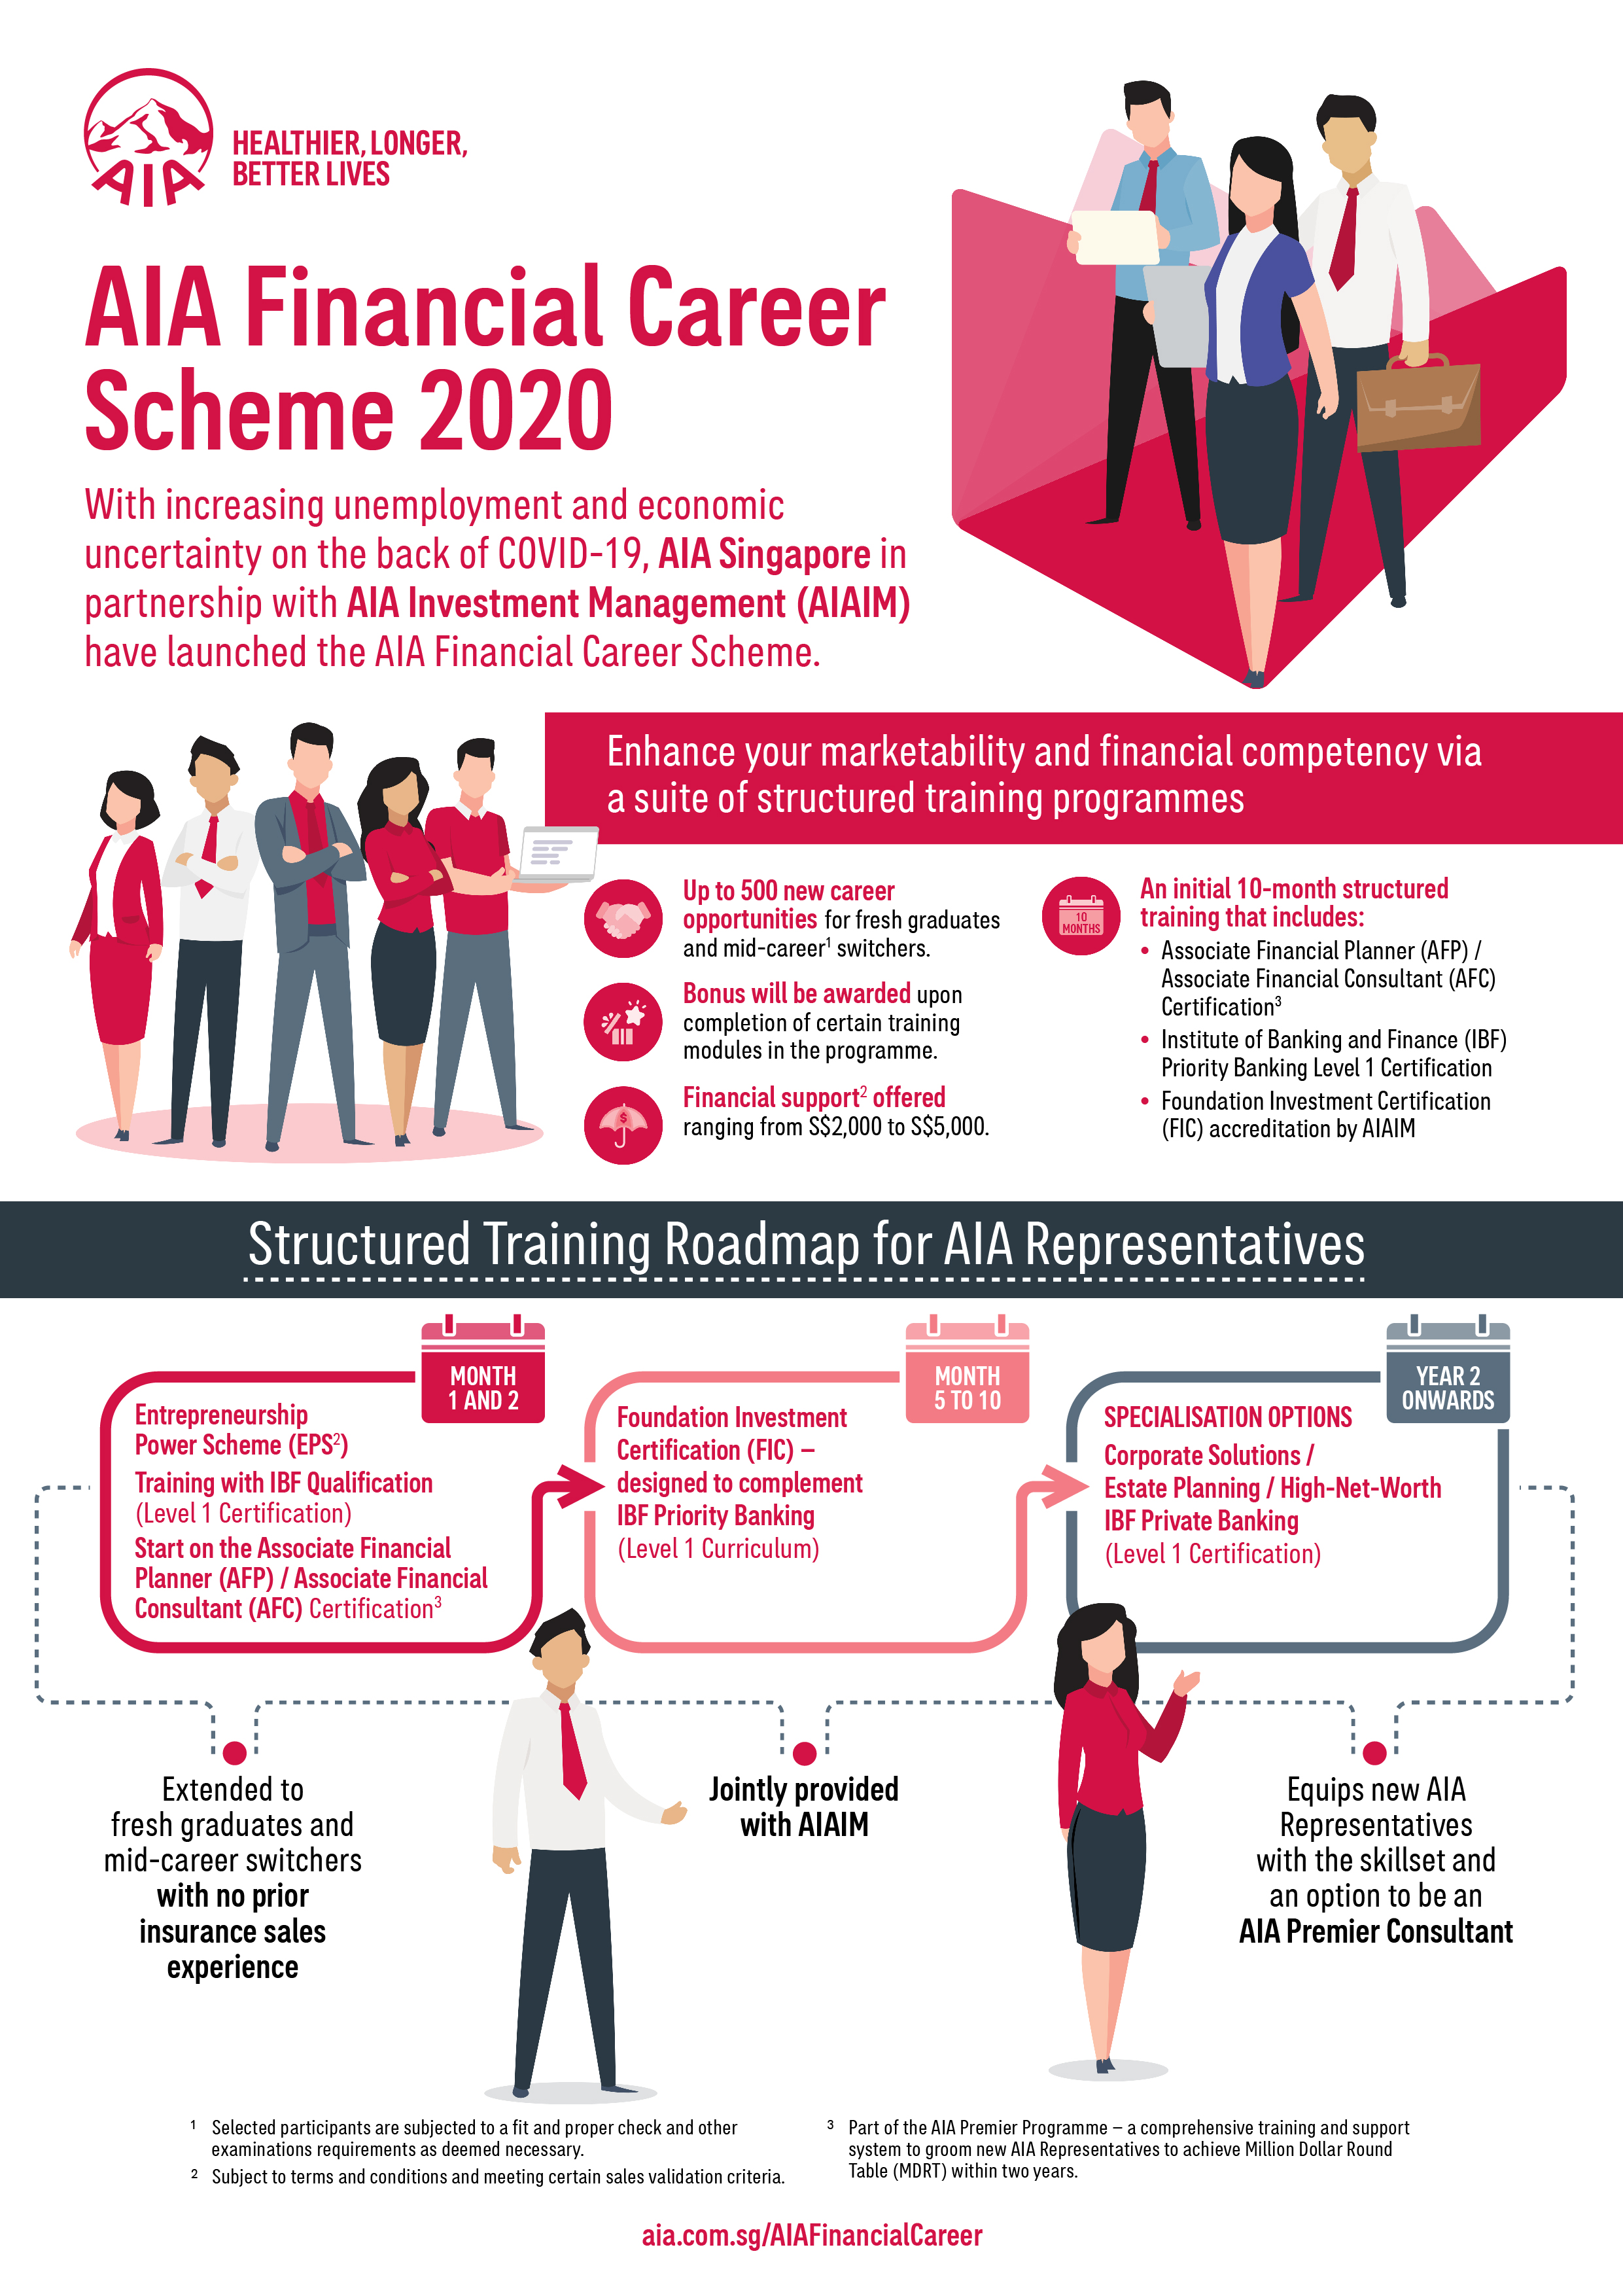 AIA Singapore creates up to 500 new career opportunities for fresh graduates and mid-career switchers impacted by COVID-19